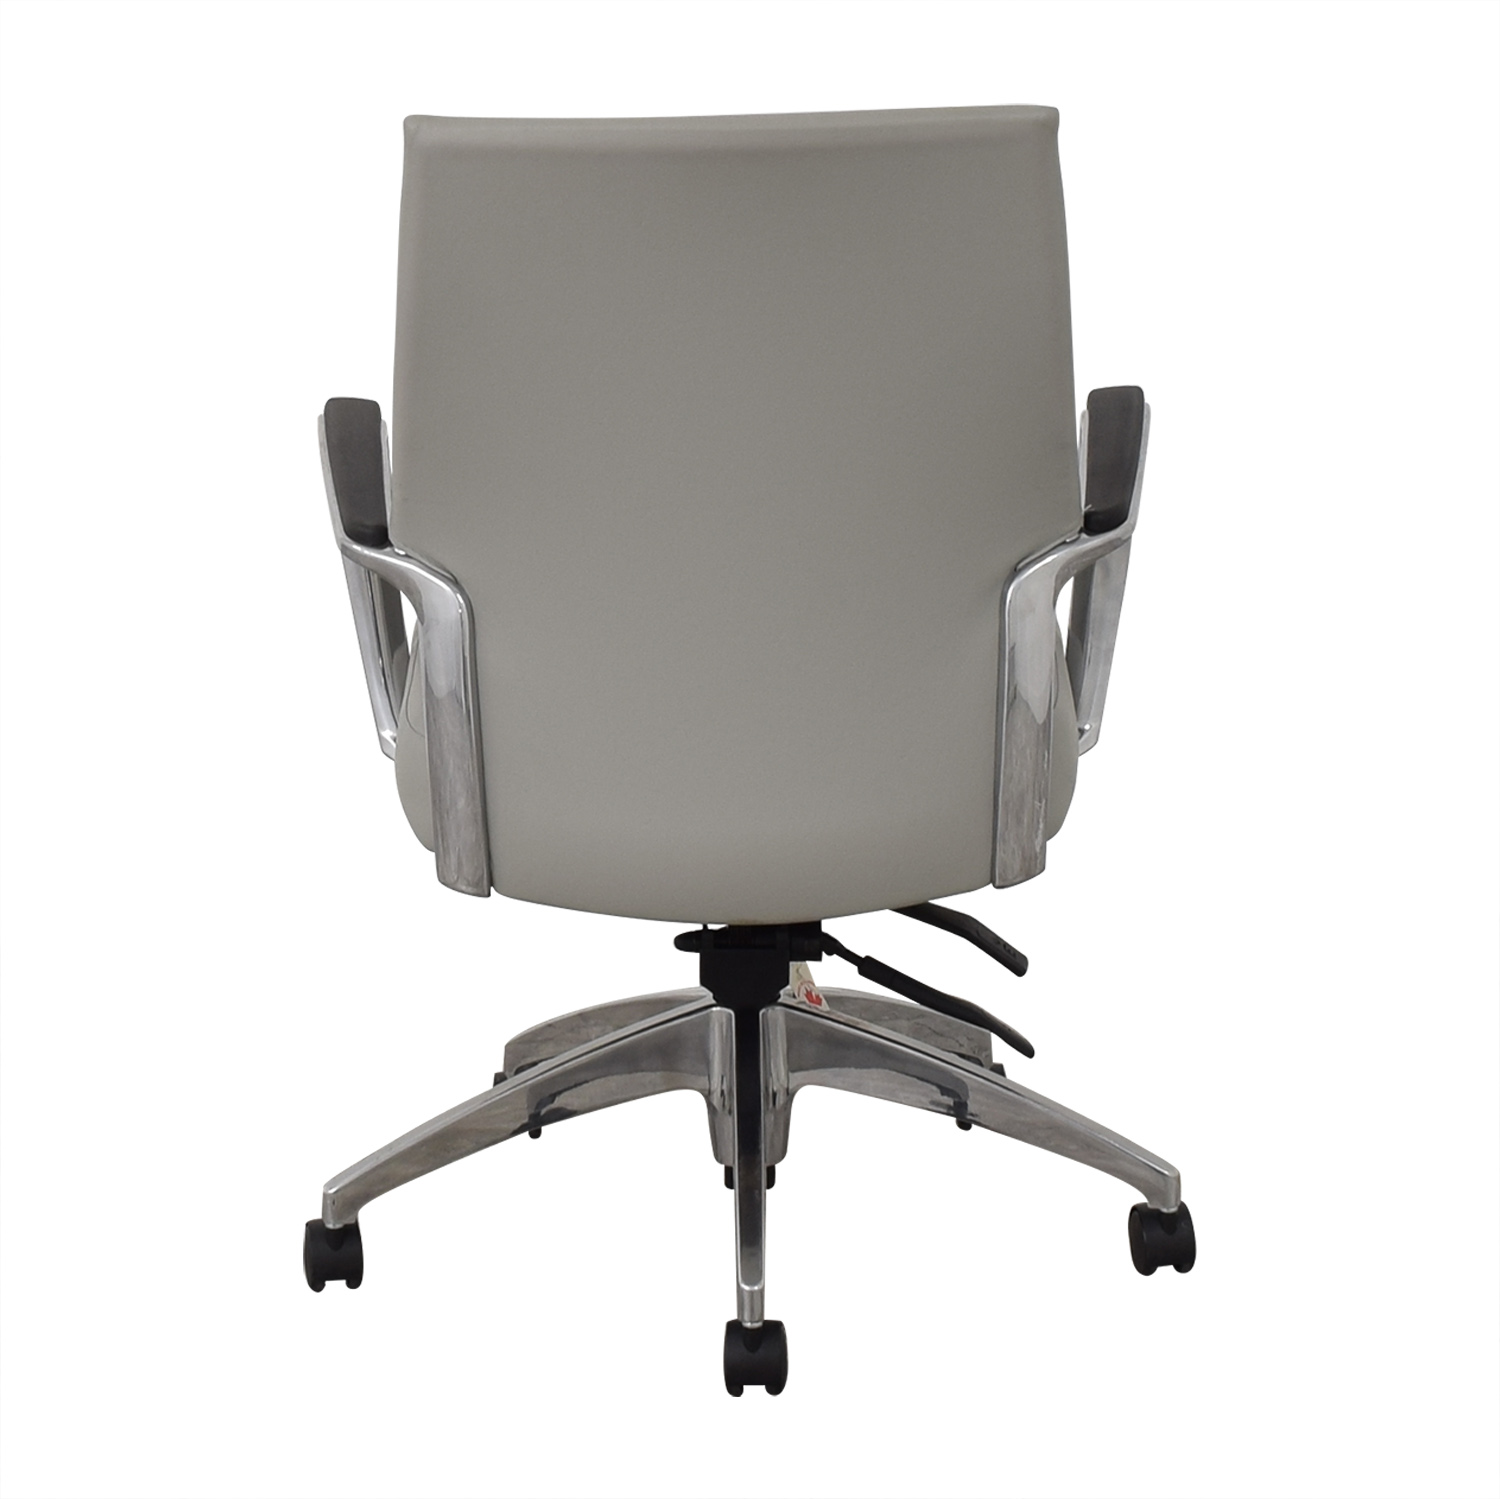 Global Global Accord Upholstered Medium Back Tilter Chair Chairs